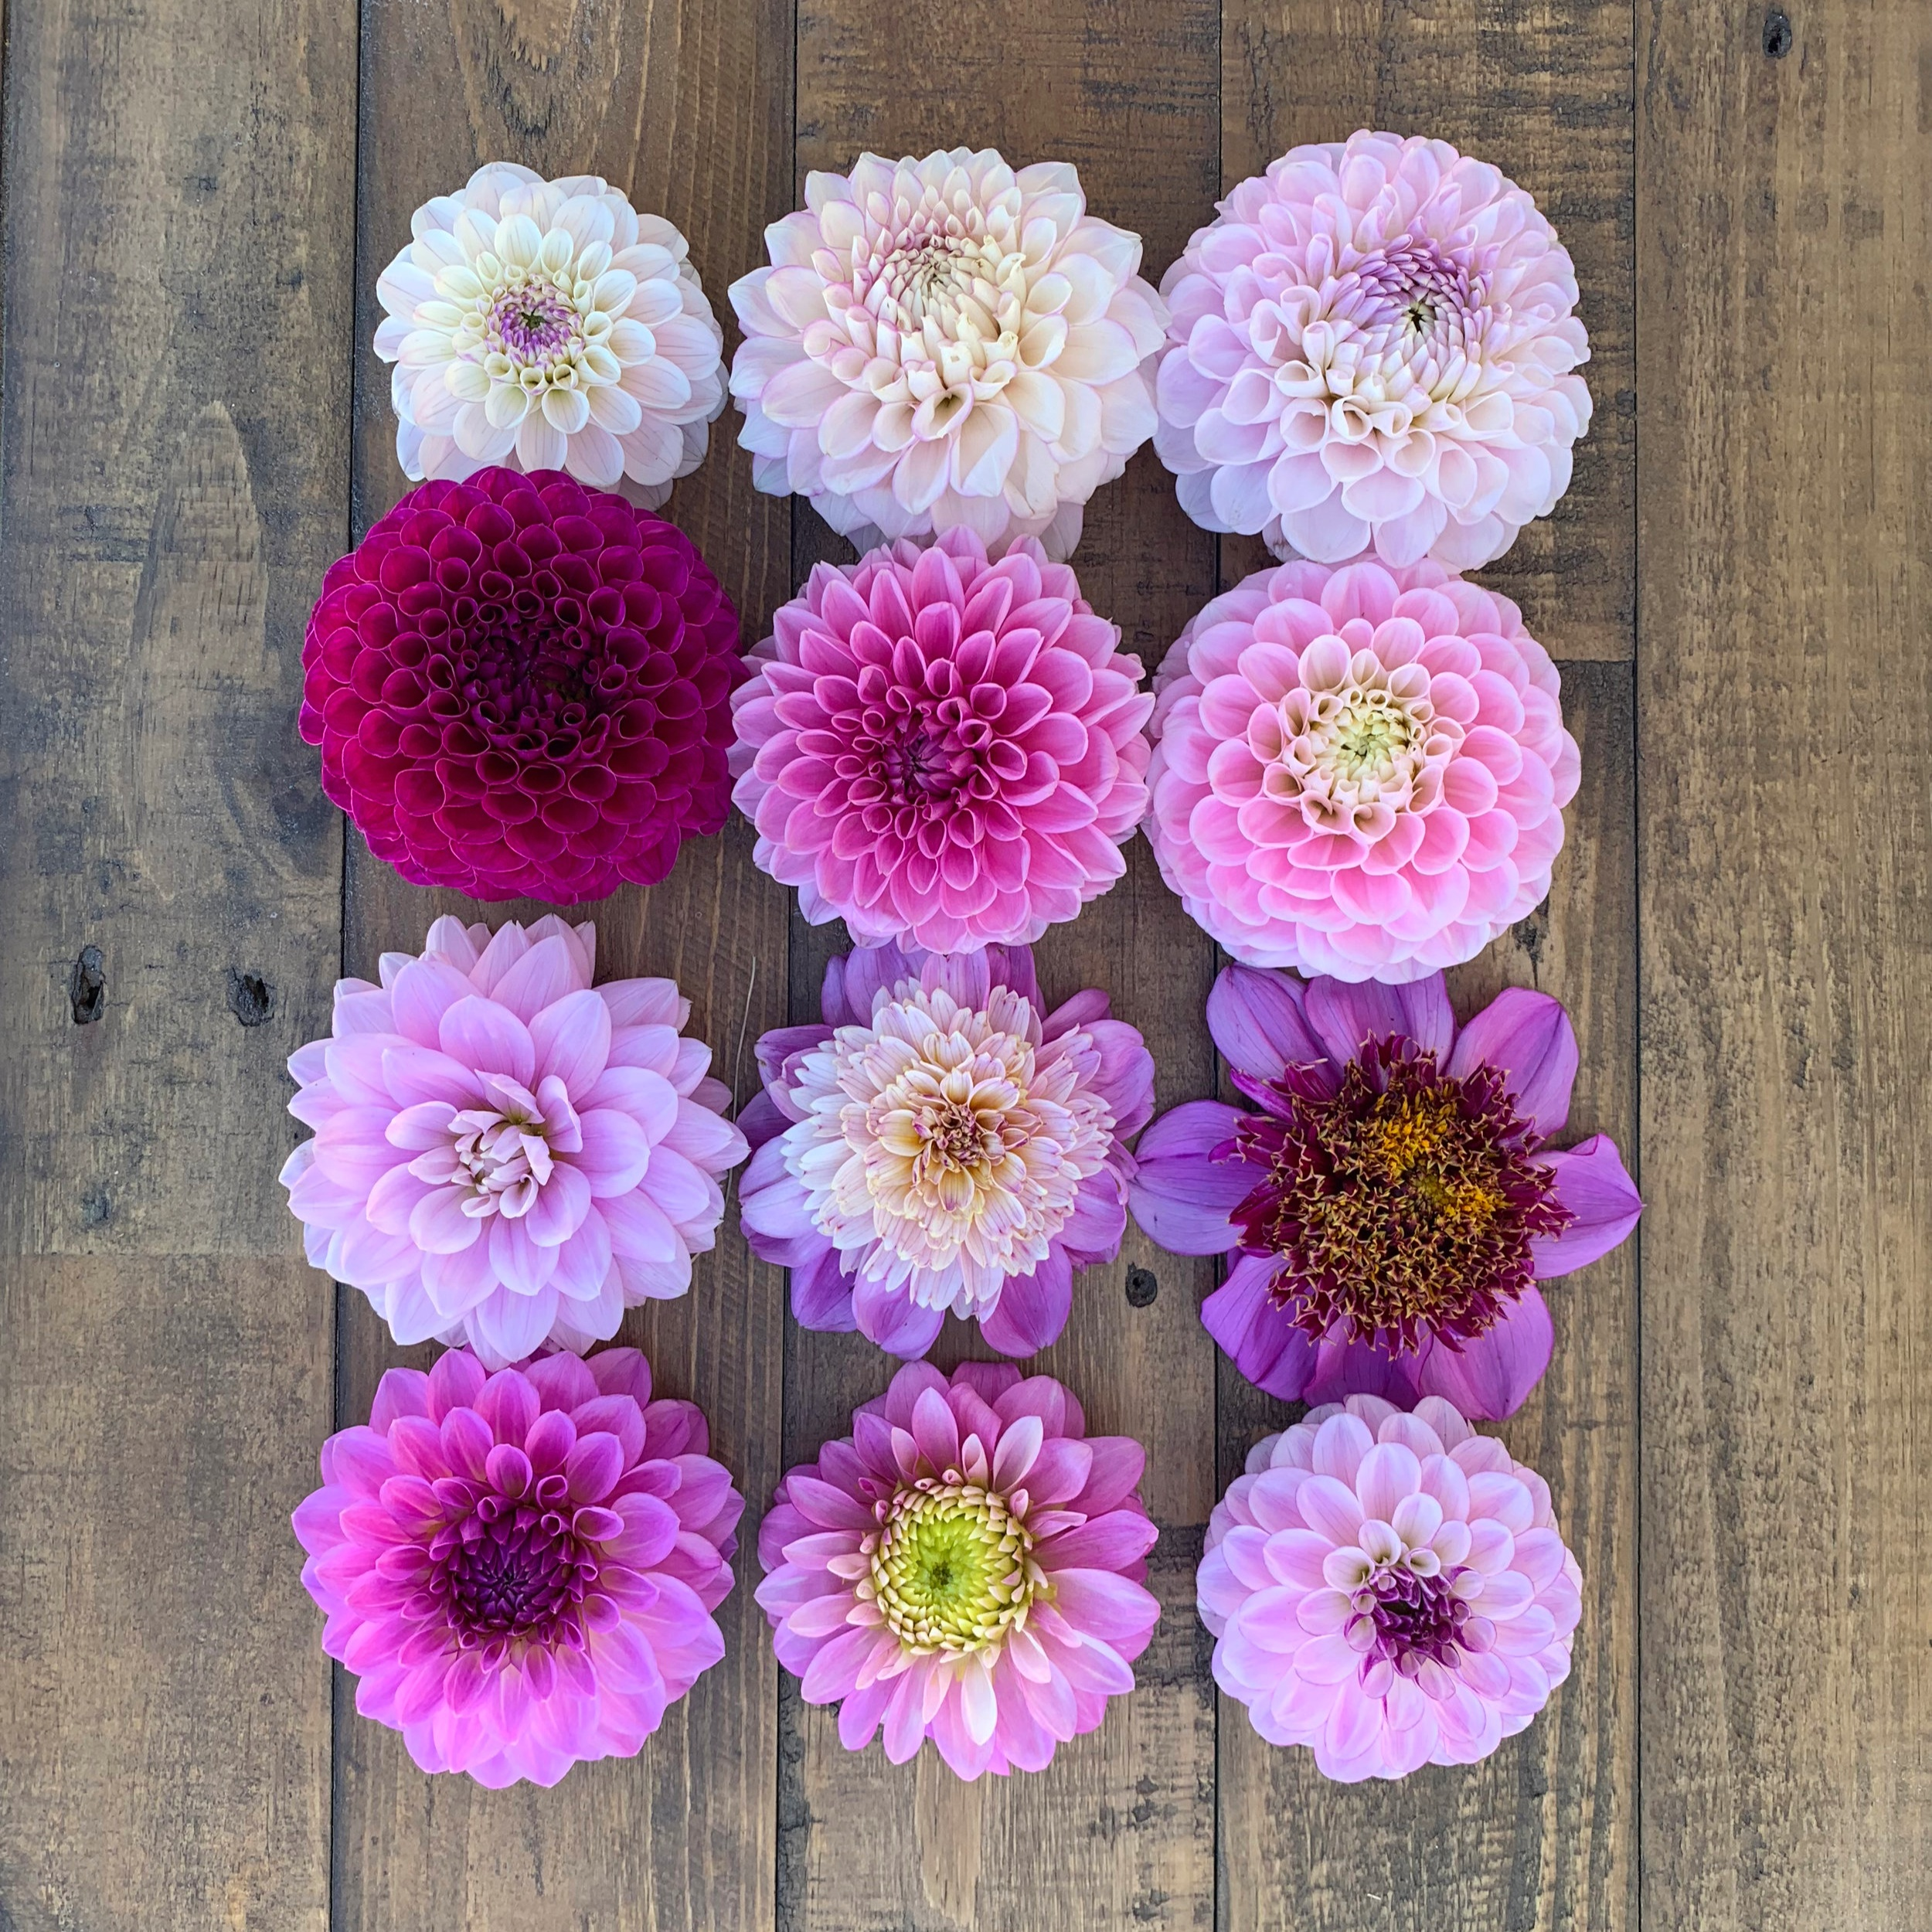 Dahlias, Pink and Lavender - Now available